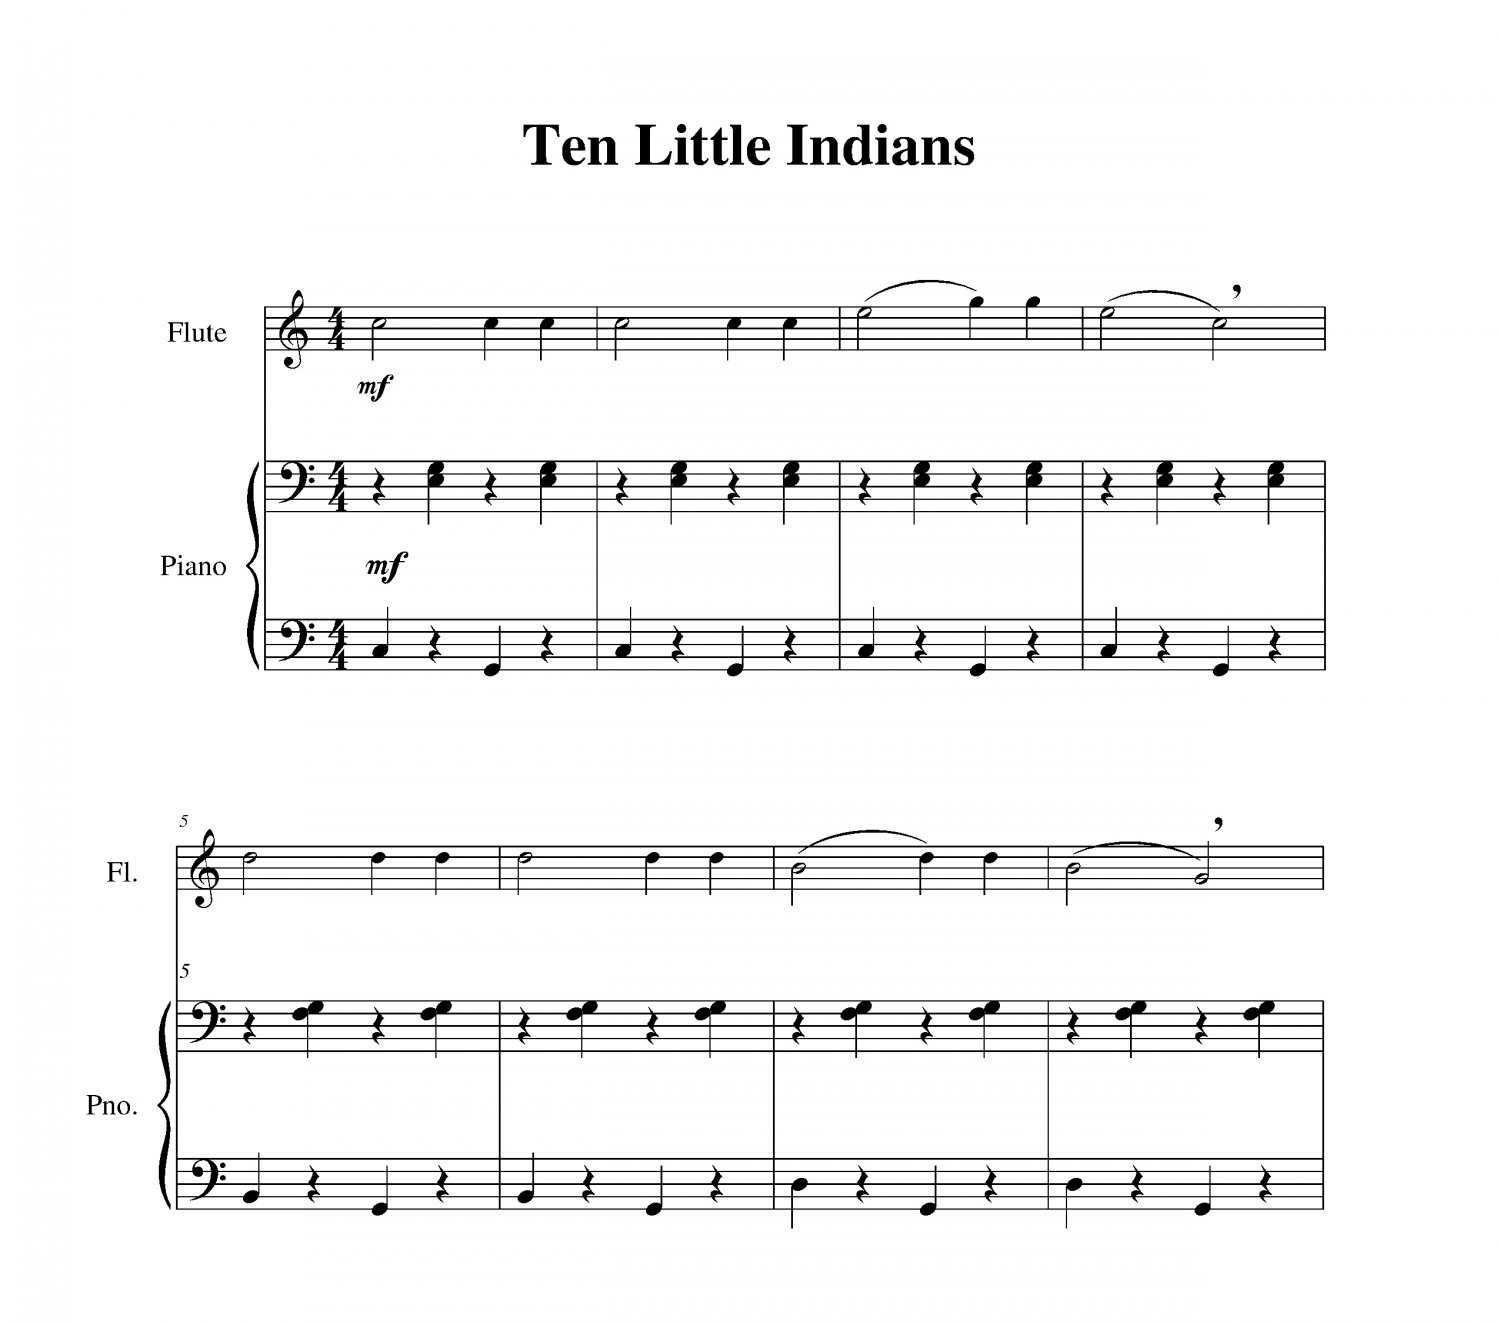 ten little indians essay In ten indians by ernest hemingway we have the theme of love, rejection, heartbreak, innocence, loss, hope, acceptance and conformity taken from his the complete short stories collection the story is narrated in the third person by any unnamed narrator and after reading the story the reader realises that hemingway may be exploring the theme of love and rejection.